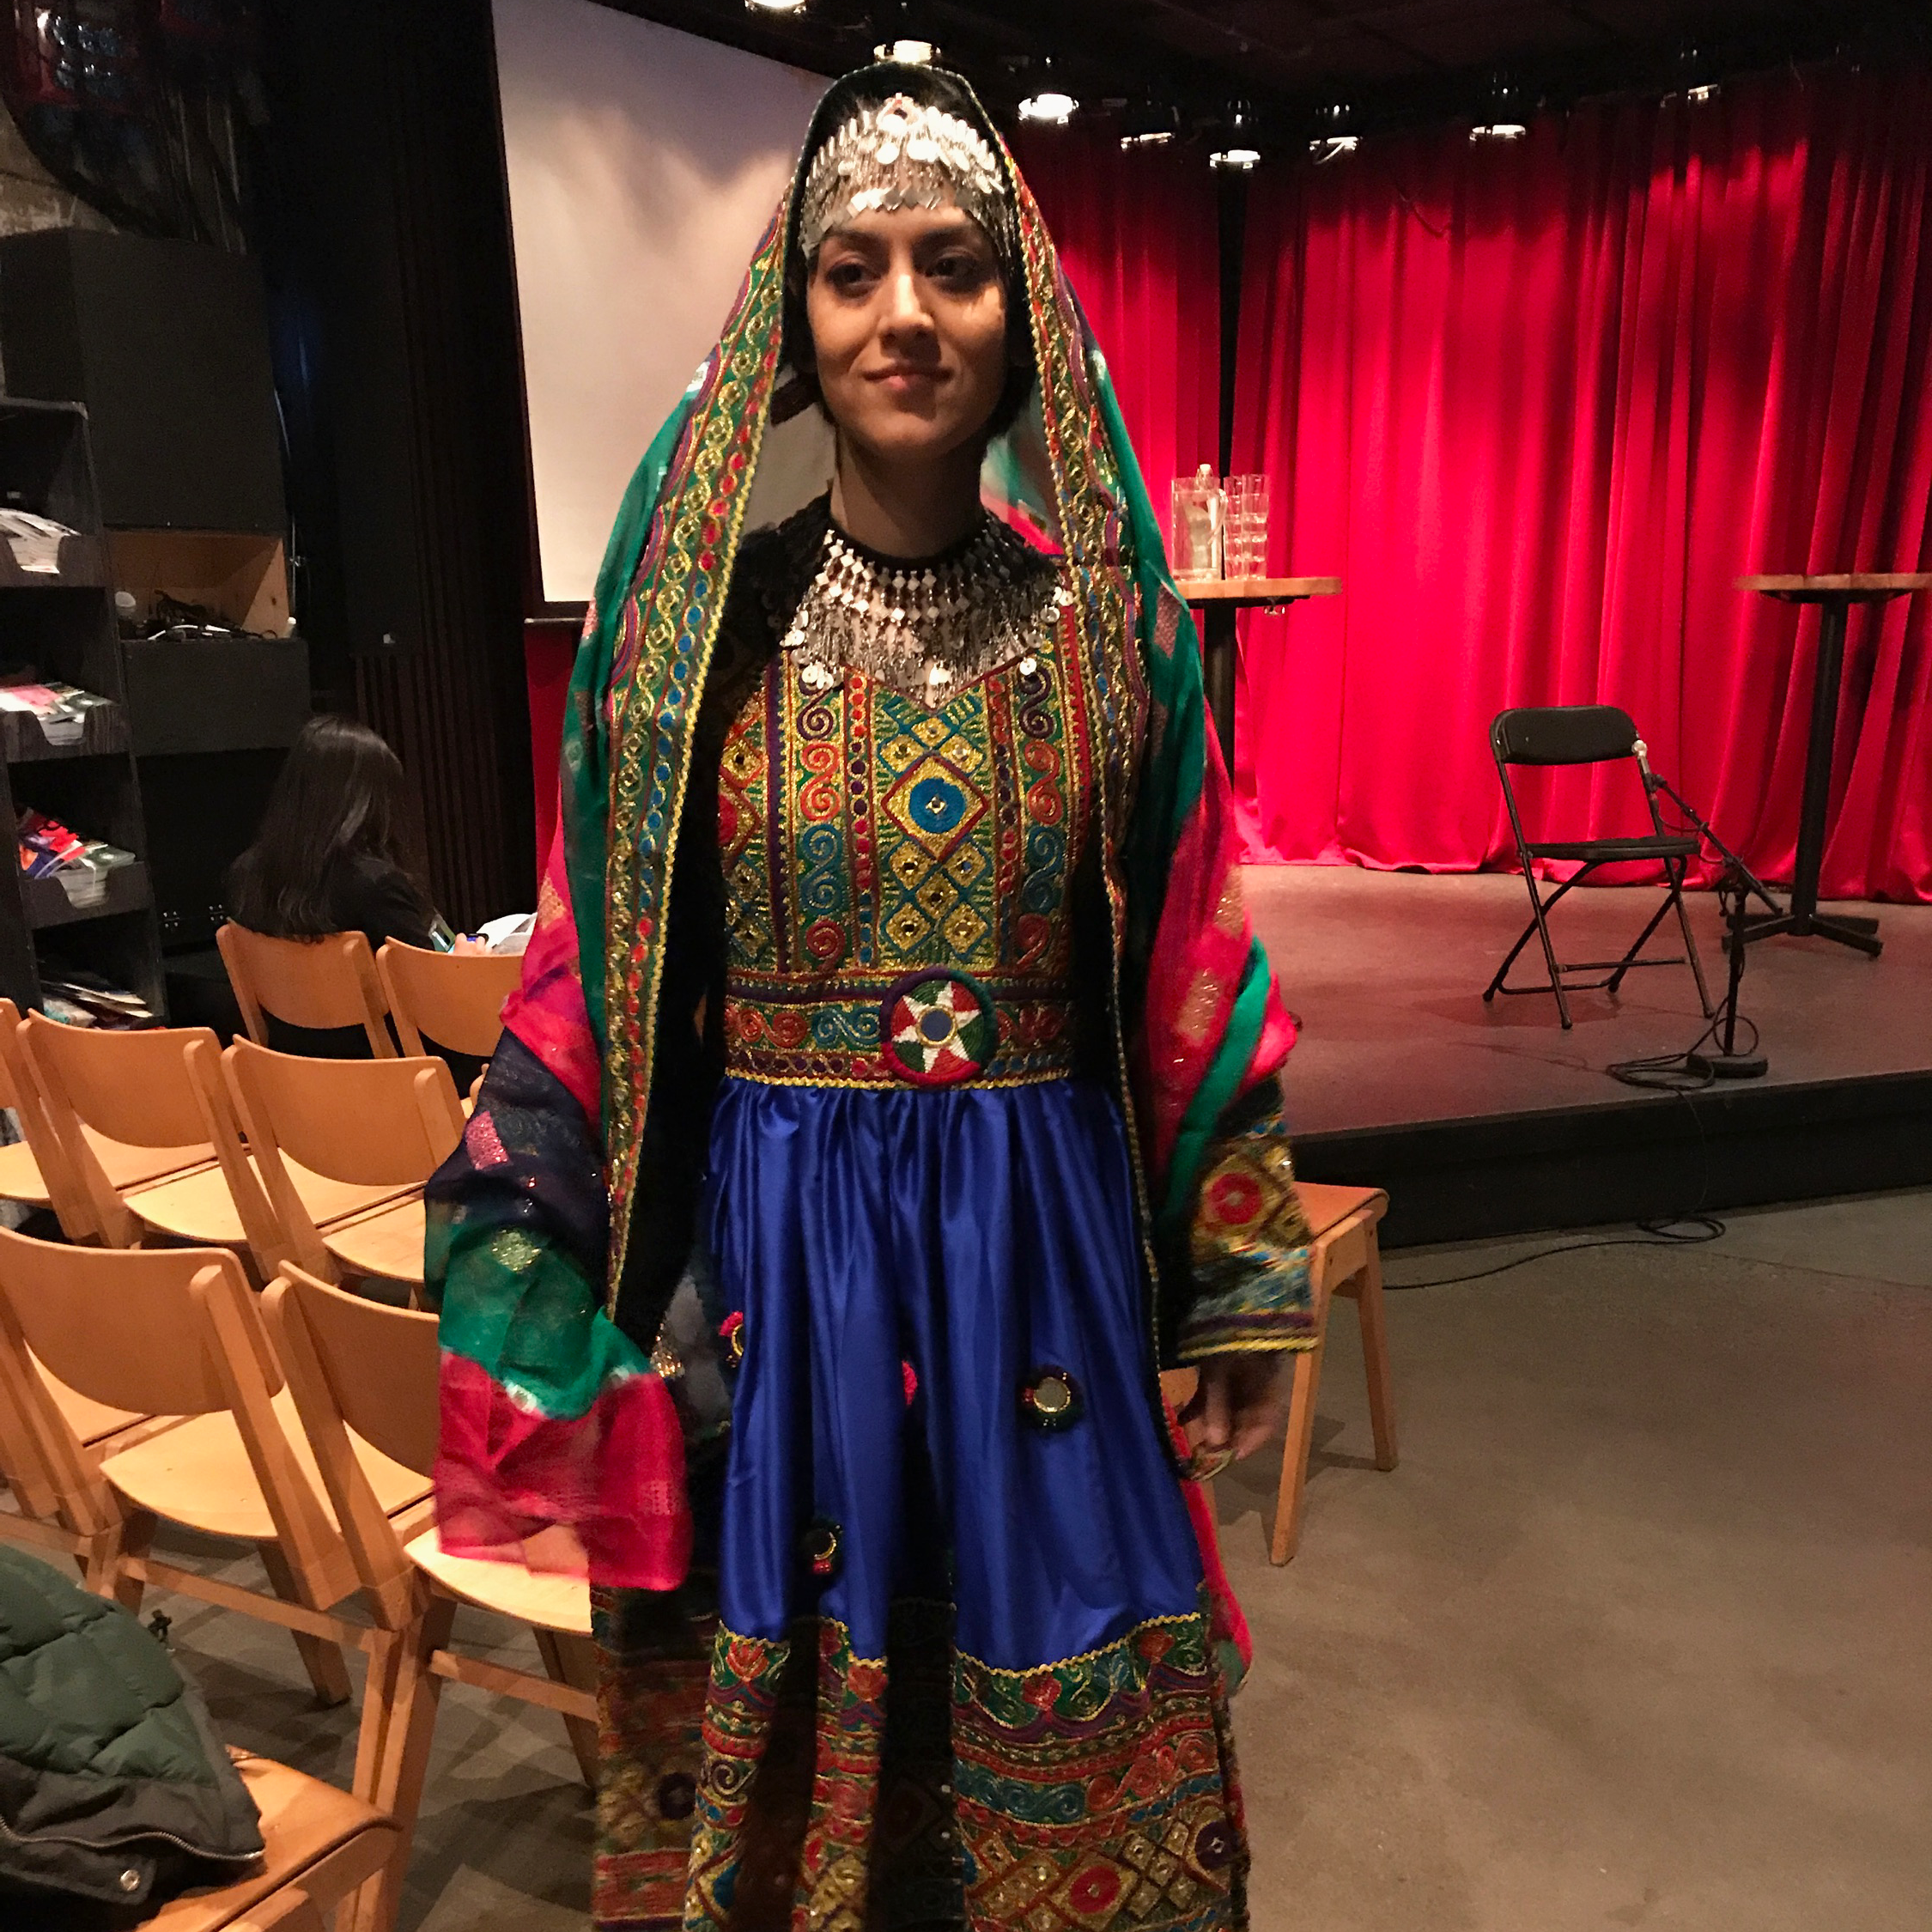 Afghan poetry event at Toronto